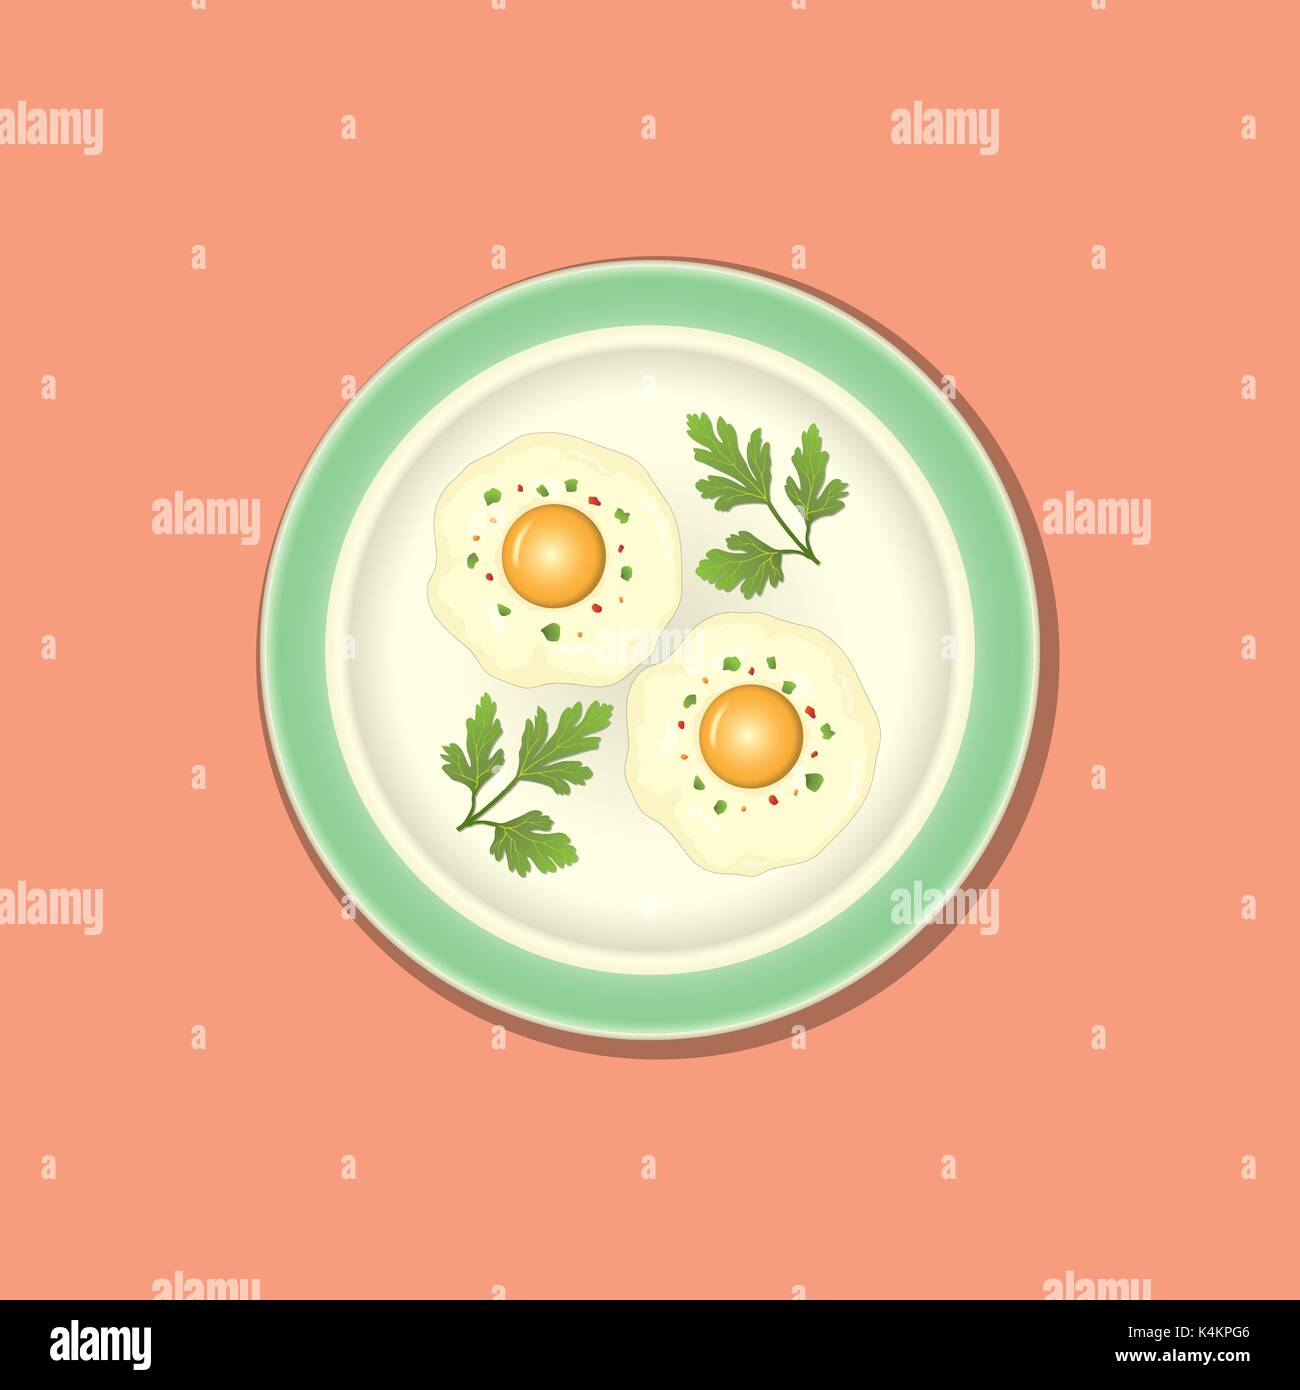 Fried egg with parsley on the plate, background without pattern - Stock Vector